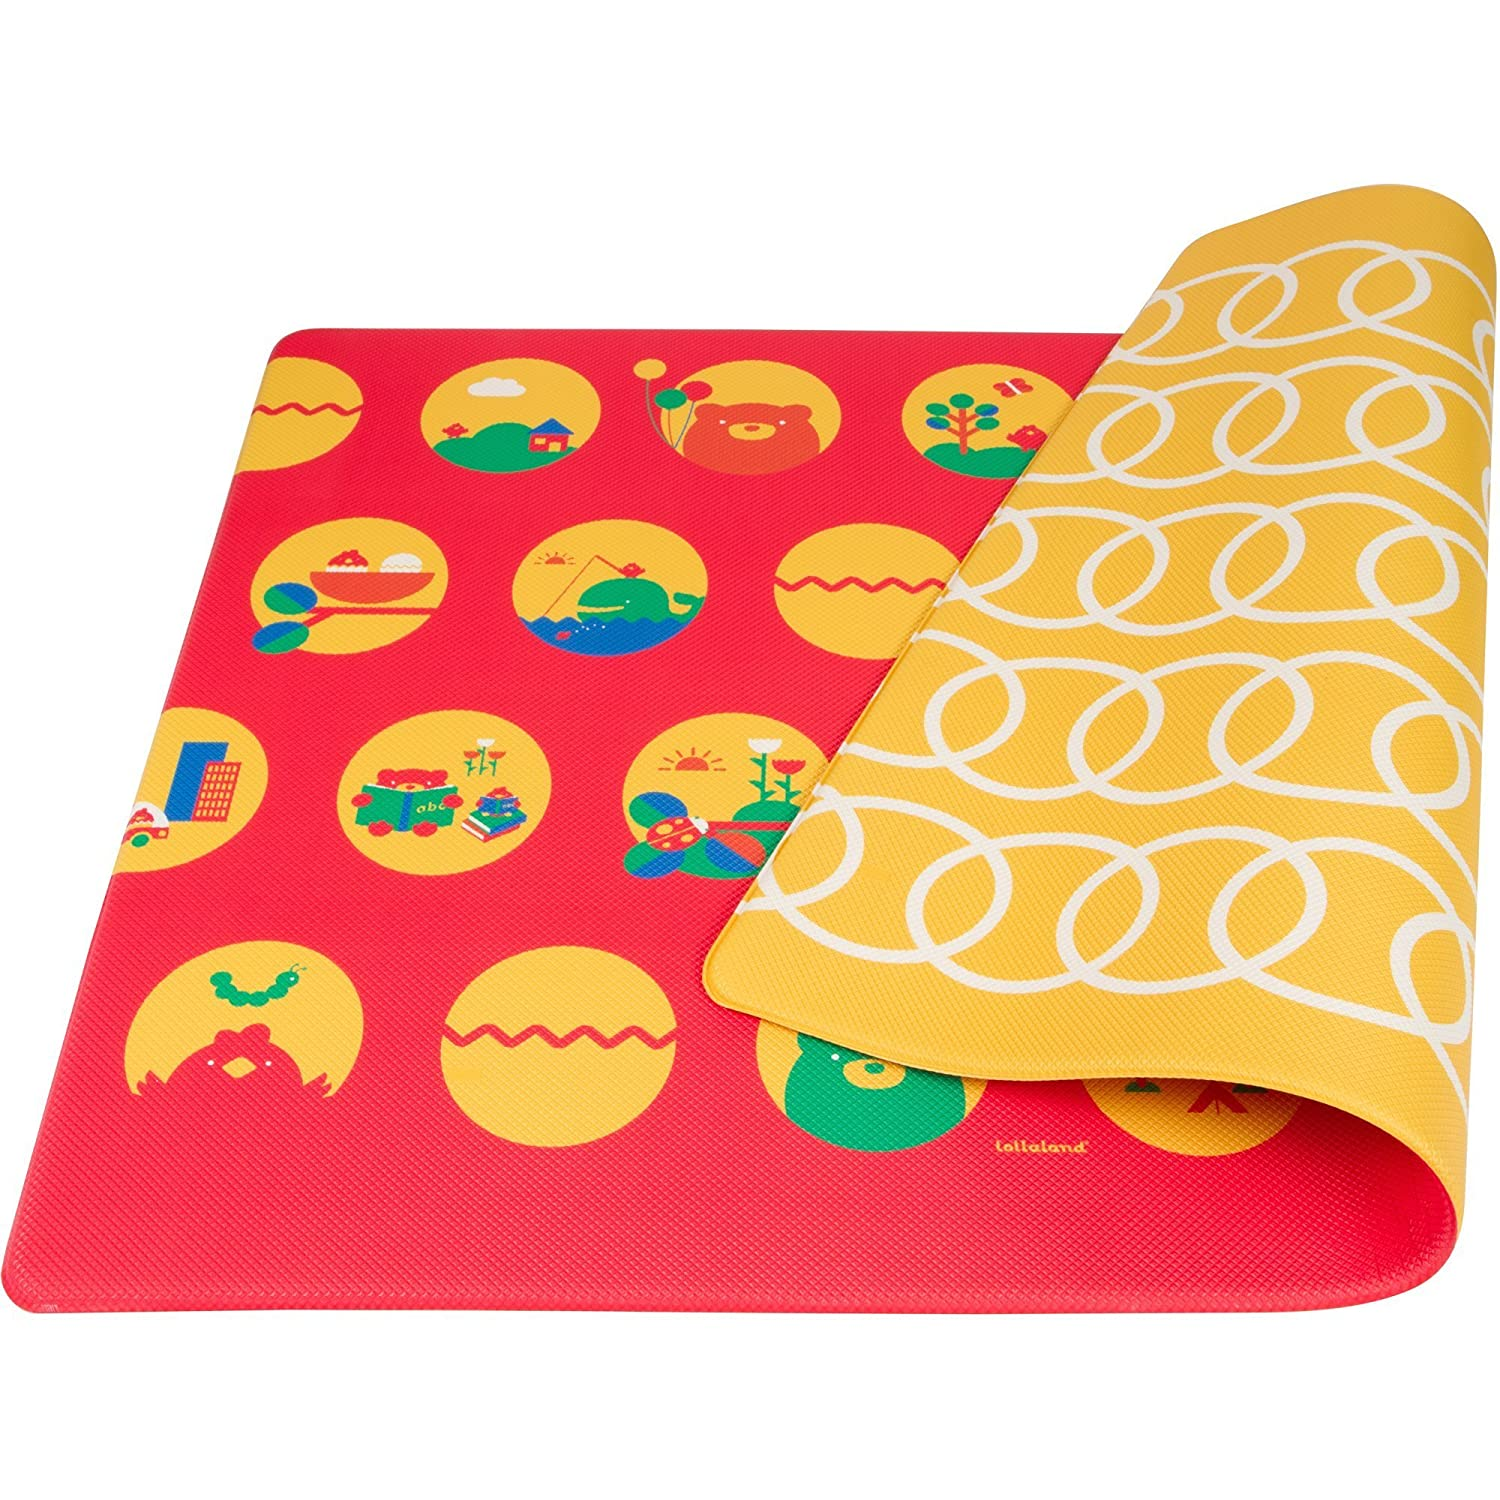 Lollaland Thick Baby Play Mat Stylish Floor Play Mats for Infants Babies Kids Toddlers Safe Baby Foam Playmat for Crawling and Playing